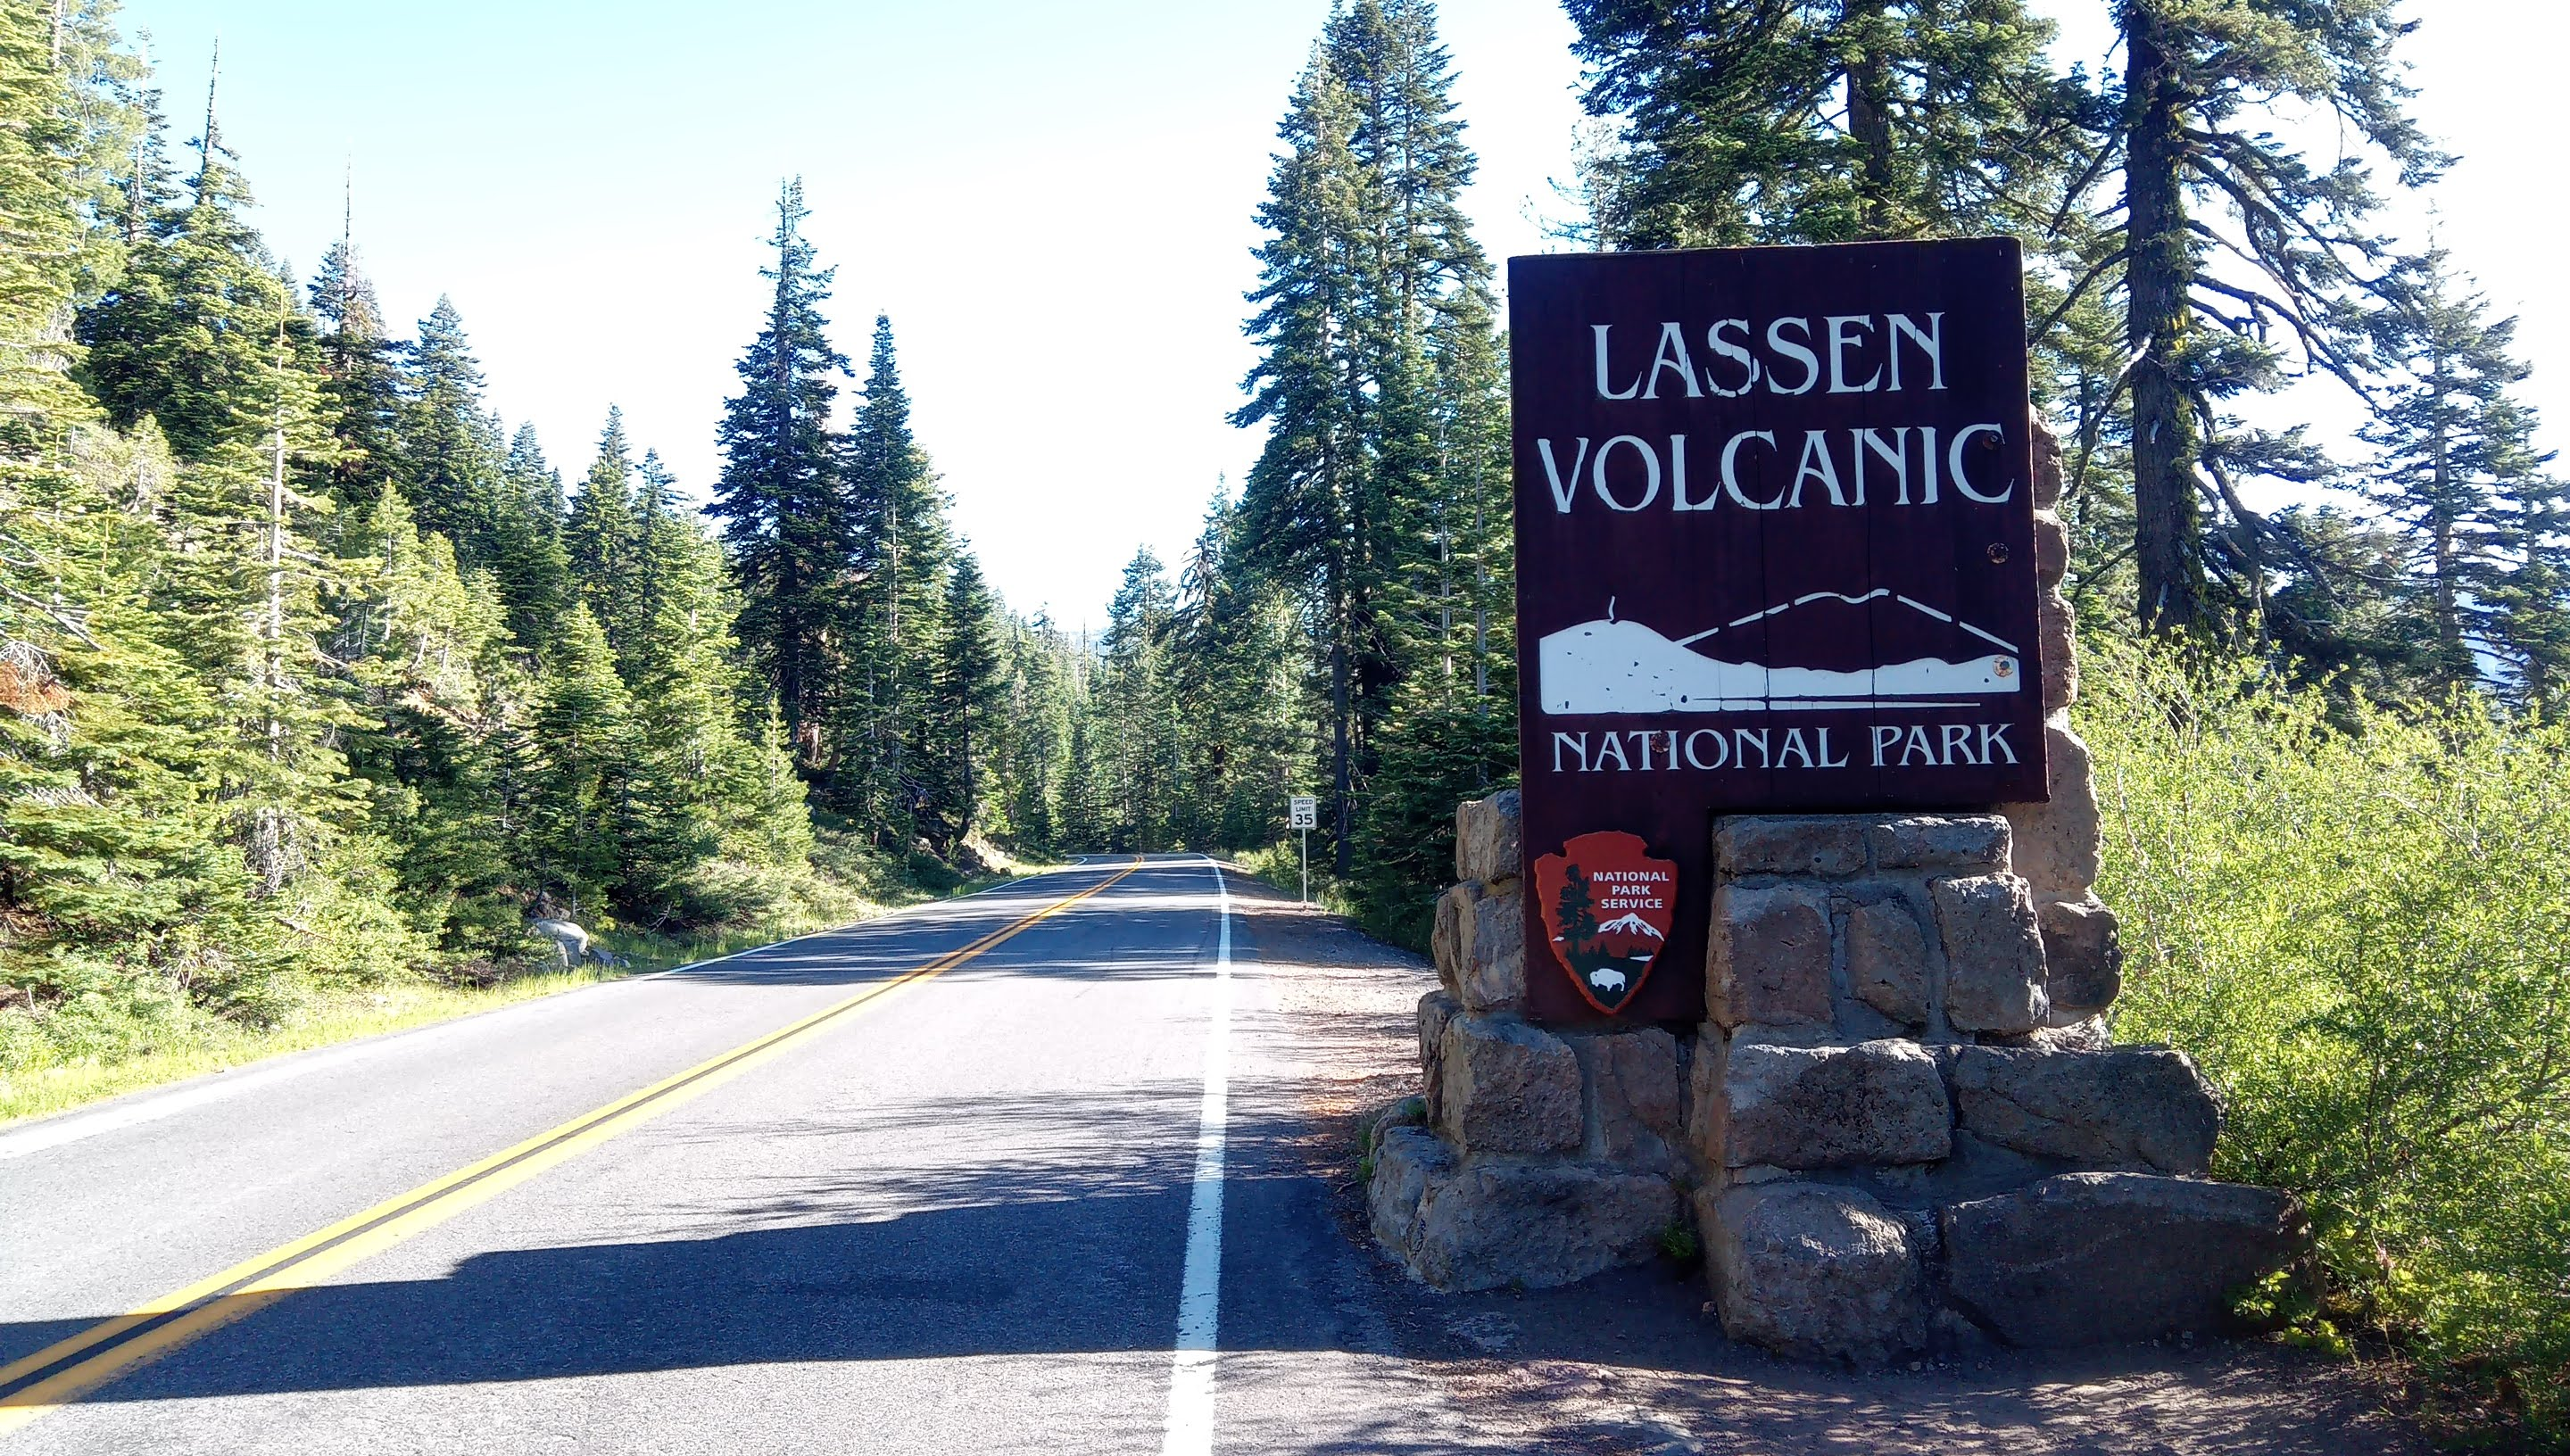 Three days in Lassen - Part 1, Brokeoff mountain 2020-07-03